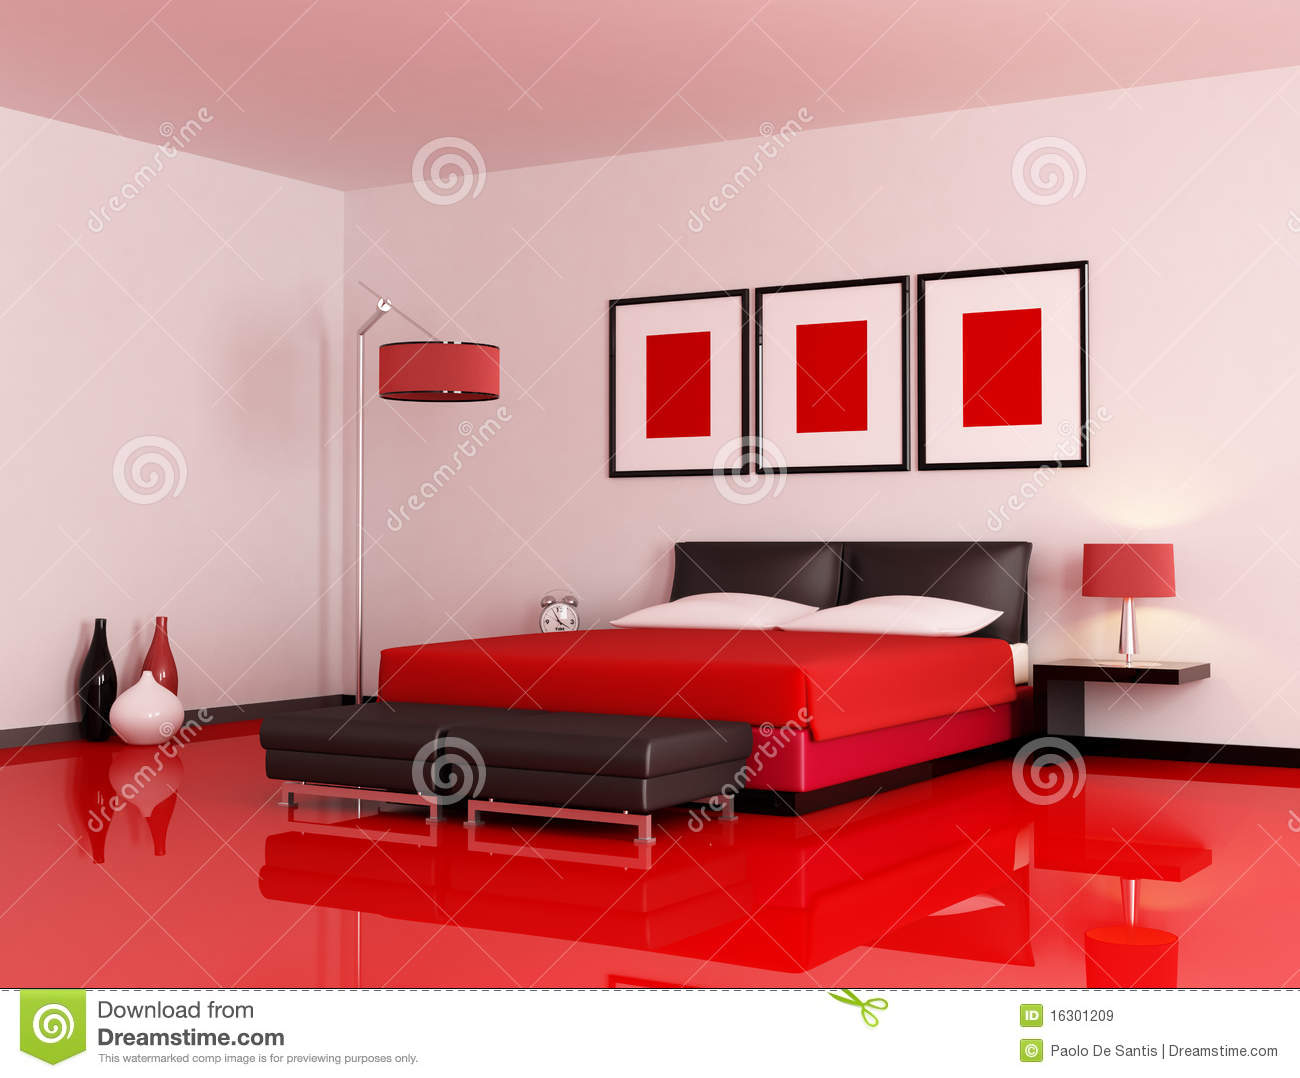 modern red and black bedroom stock illustration illustration of rh dreamstime com modern red bedroom design